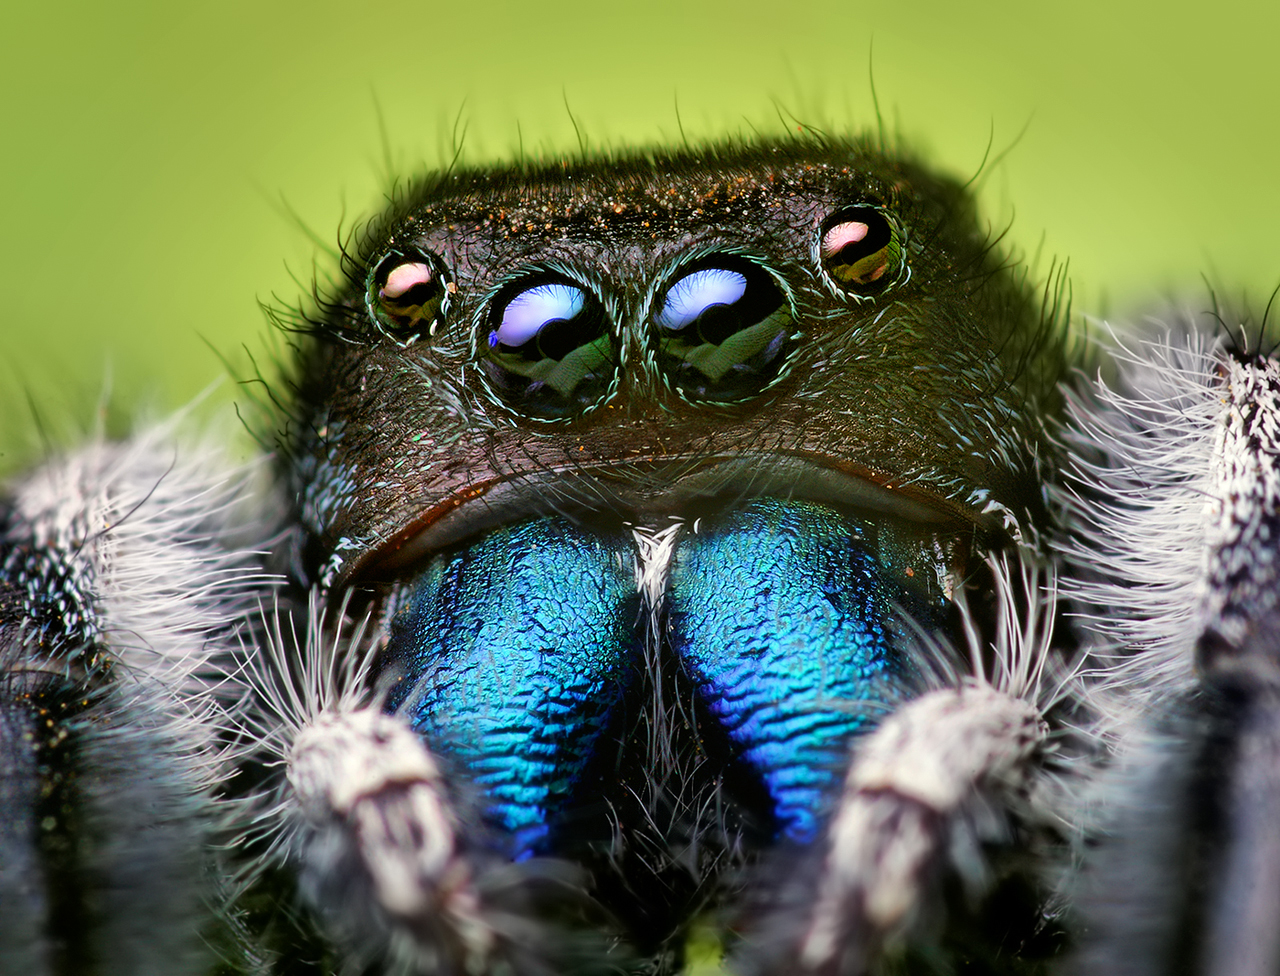 Spider close-up: Phidippus audax Jumping Spider